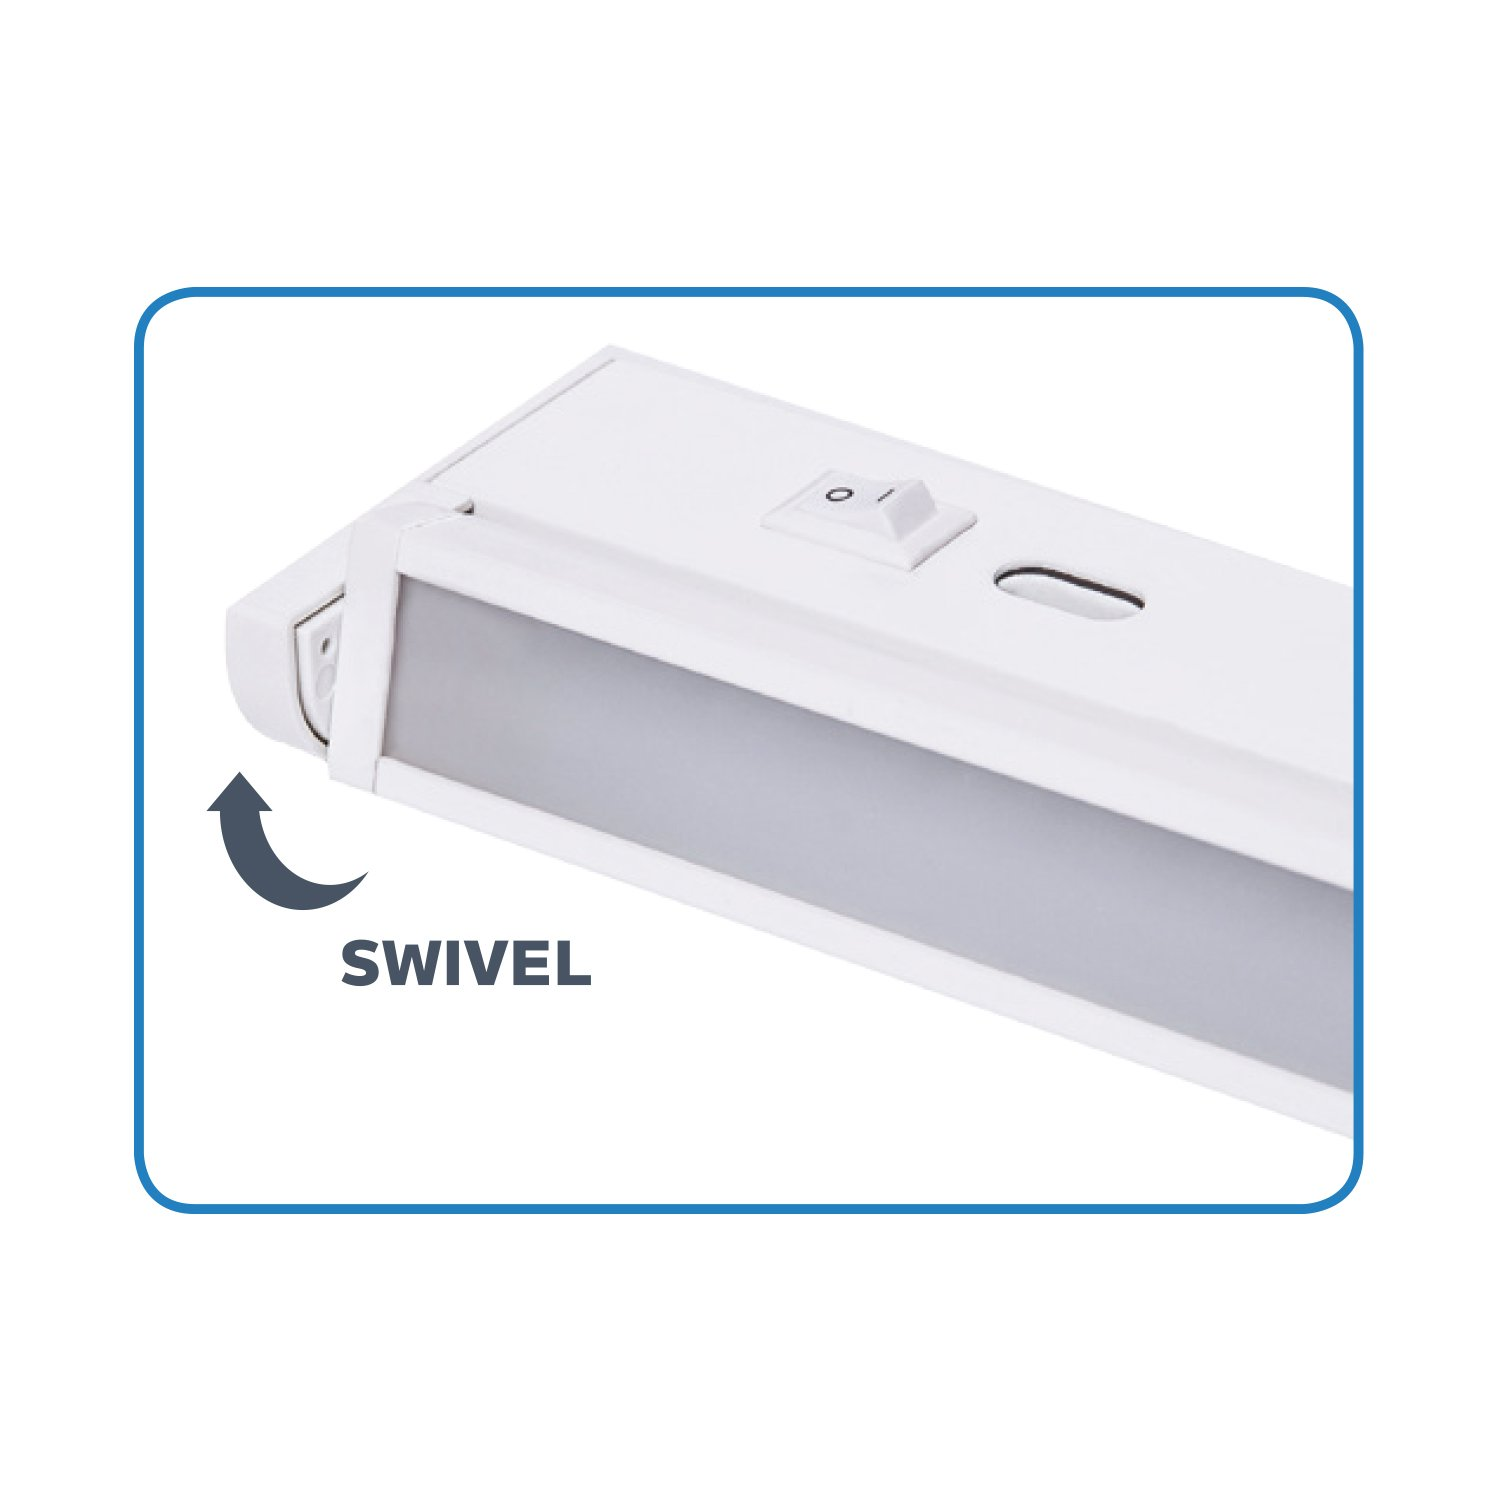 3 Color Setttings Built in 1 Unit: Soft White Warm White and Cool White Aluminum Construction Energy Star Nadair 11 LED Plug-in Swivel Ultra Slim Dimmable Under Cabinet /& Closet Lighting